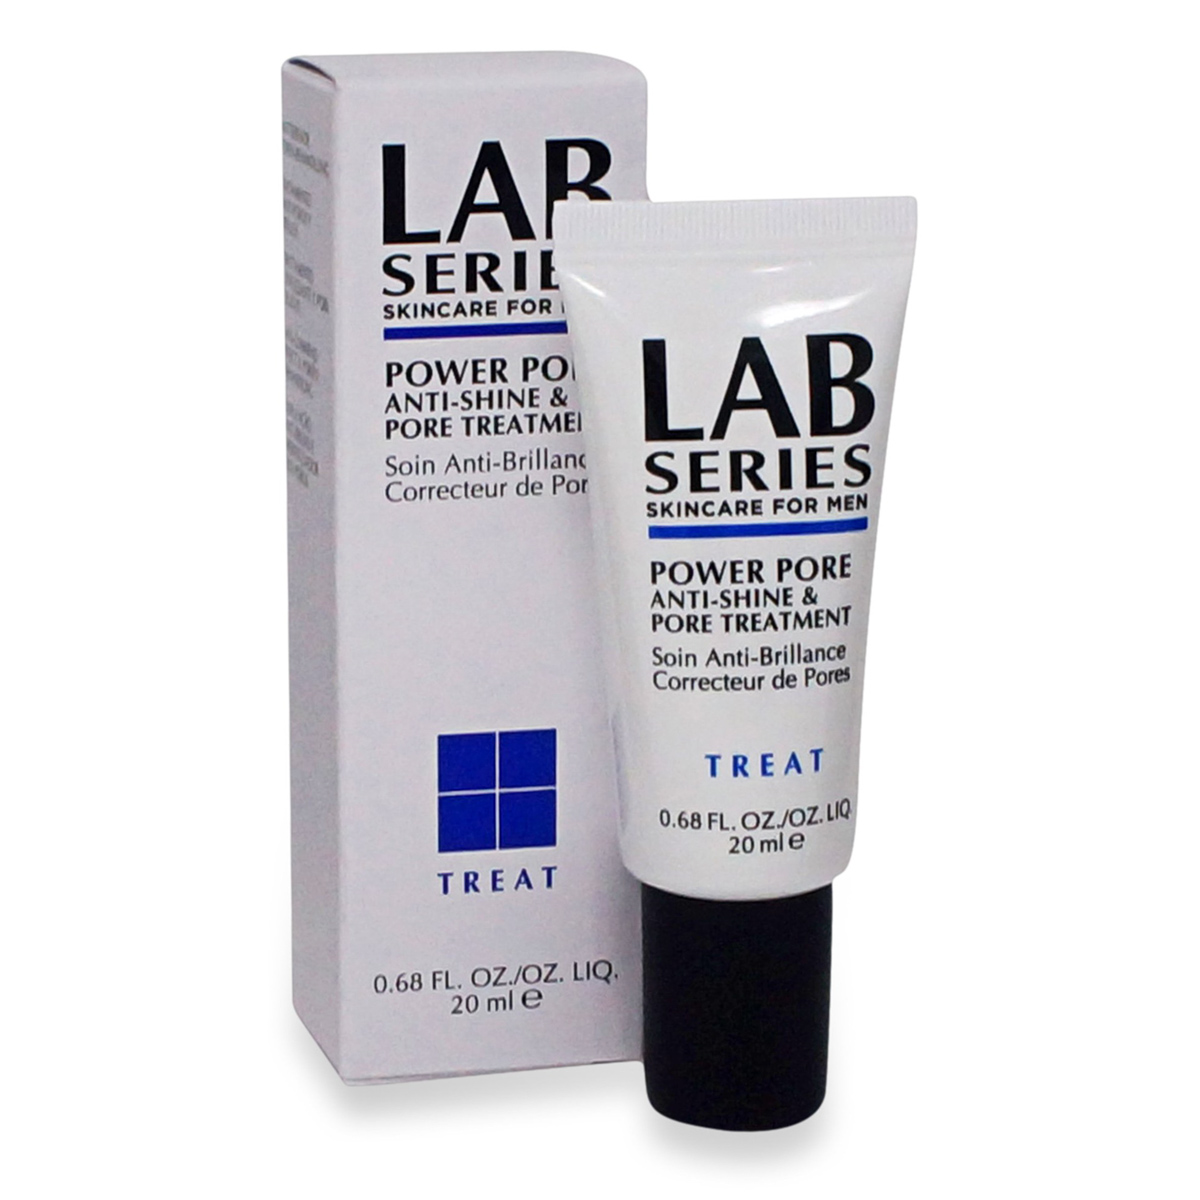 labseries-power-pore-anti-shine-pore-treatment-product-fake-perfect-skin-man-for-himself